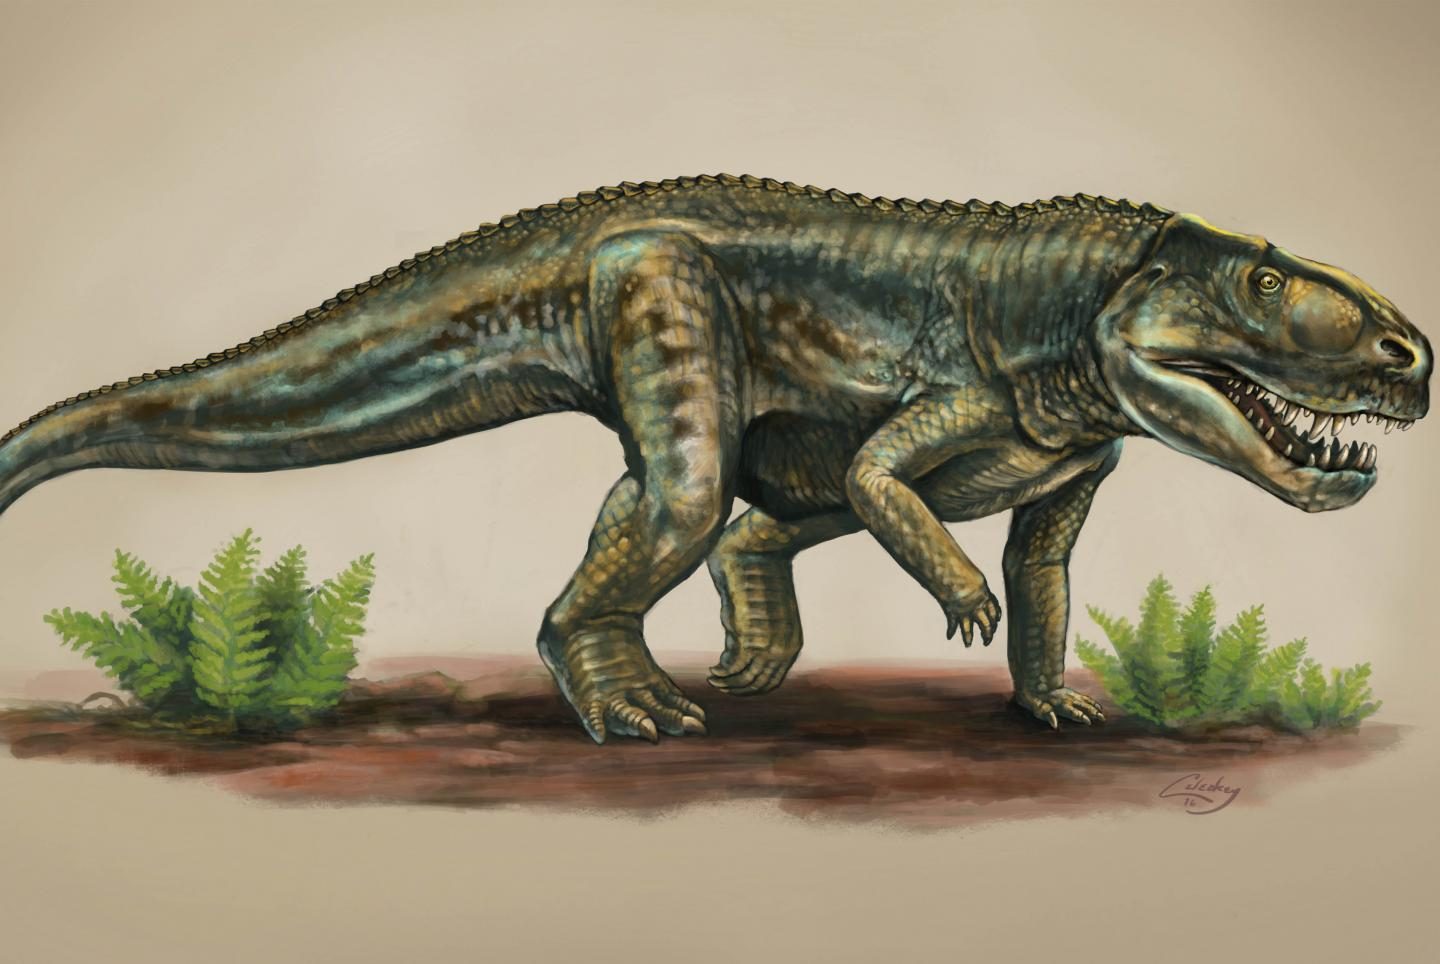 New reptile species from 212 million years ago identified